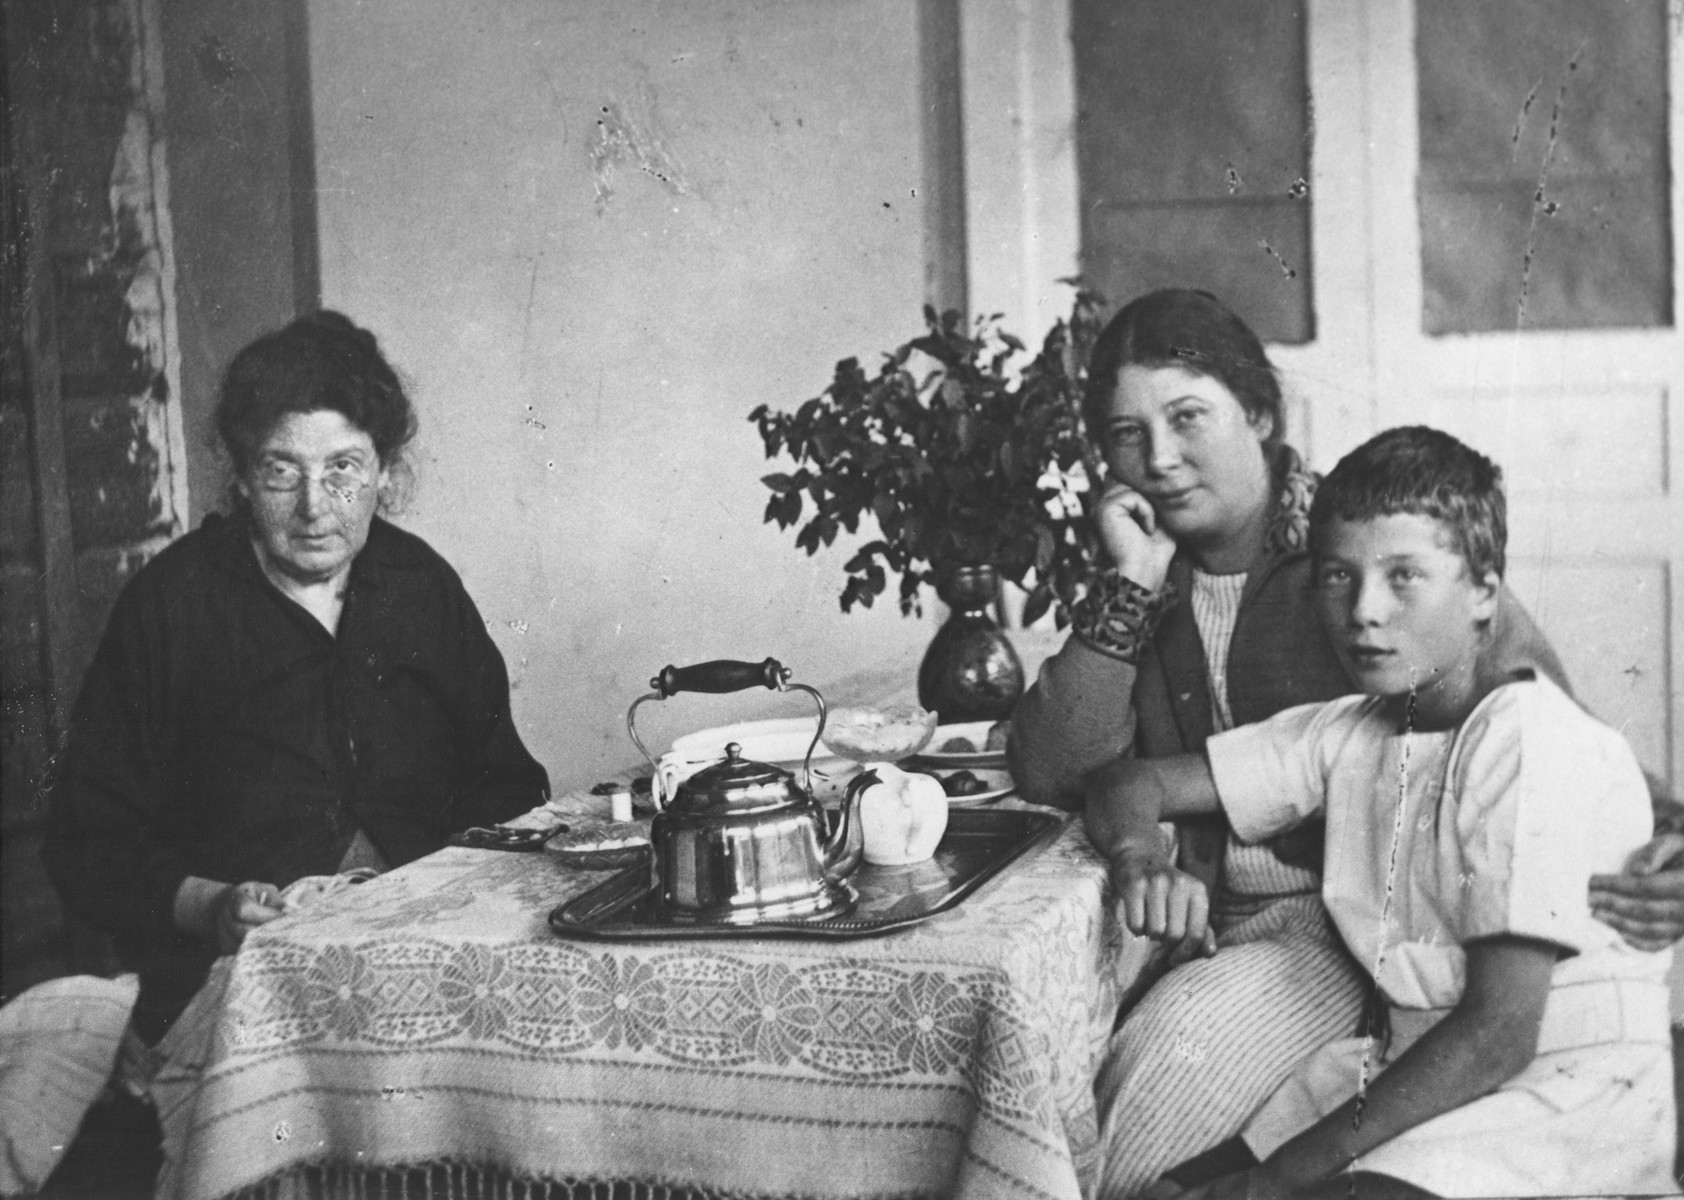 Members of the Magid family sit around a table set with a tea service.  Pictured on the left is Fanya Mikolayevsky, wife of Feodor Mikolayevsky (engraver to the Czar), with her daughter Anna Gilelevich Magid and her grandson Nathan.